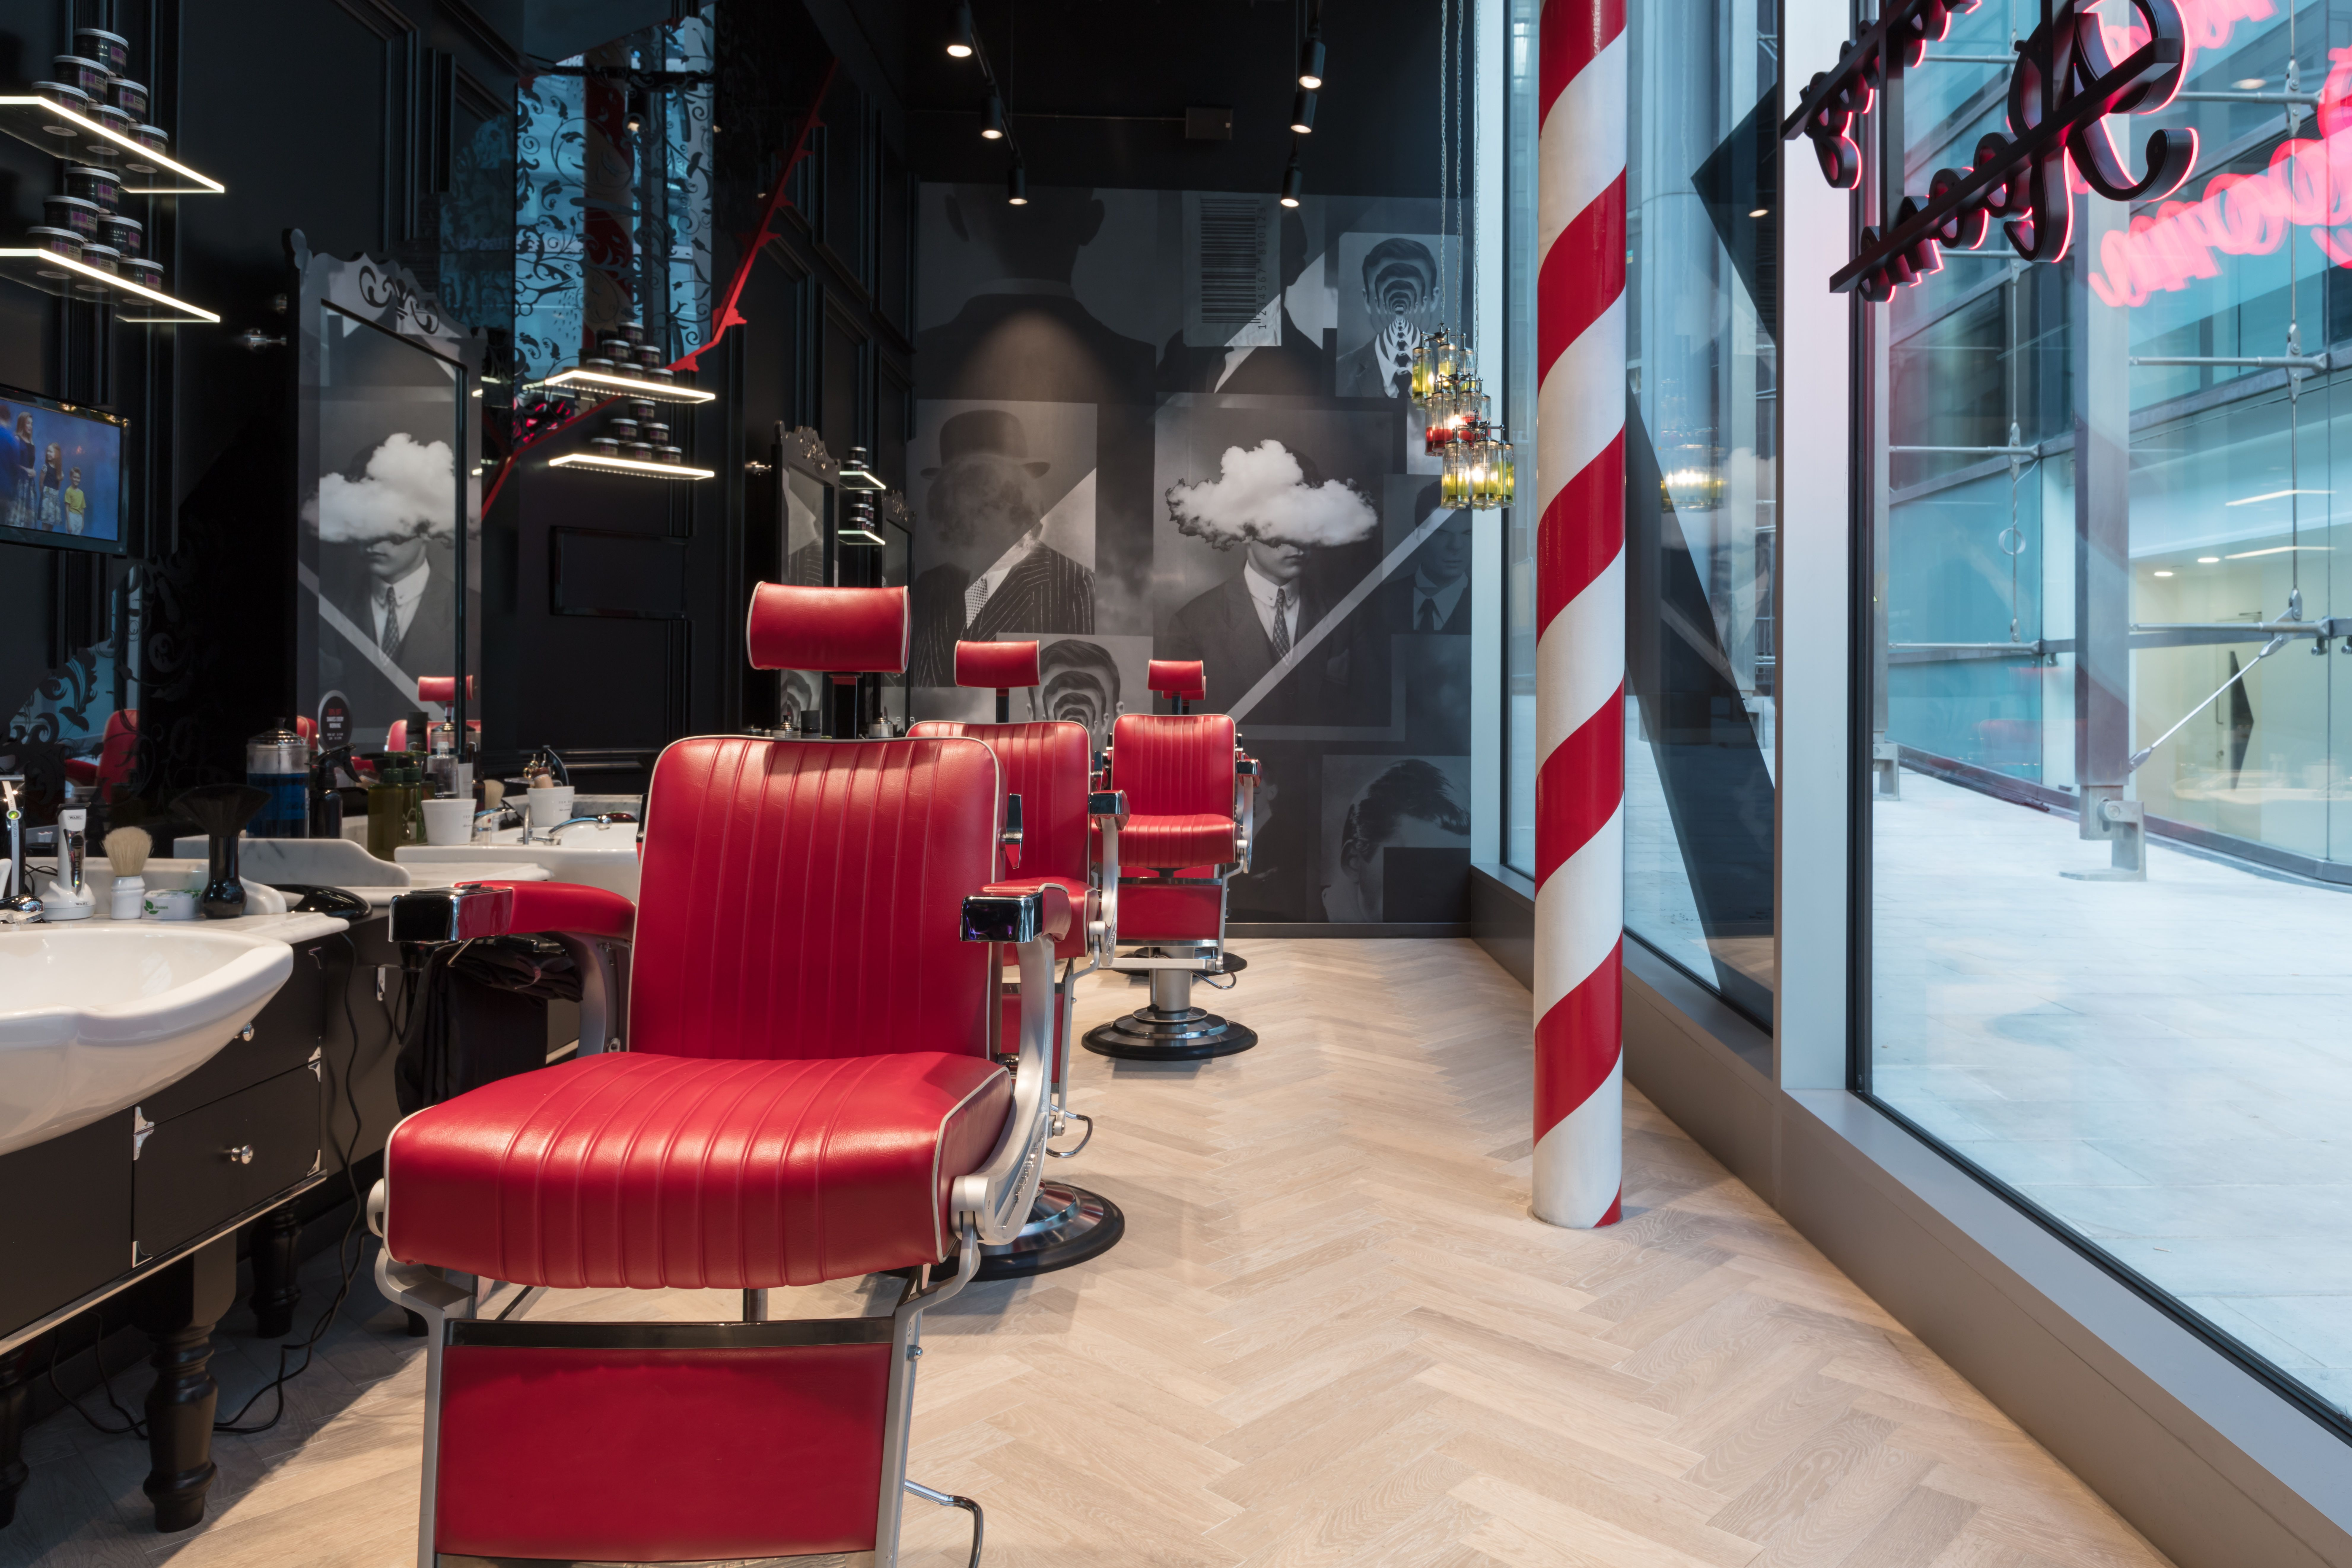 Ted S Grooming Room Liverpool Street Can Be Found At The Meeting